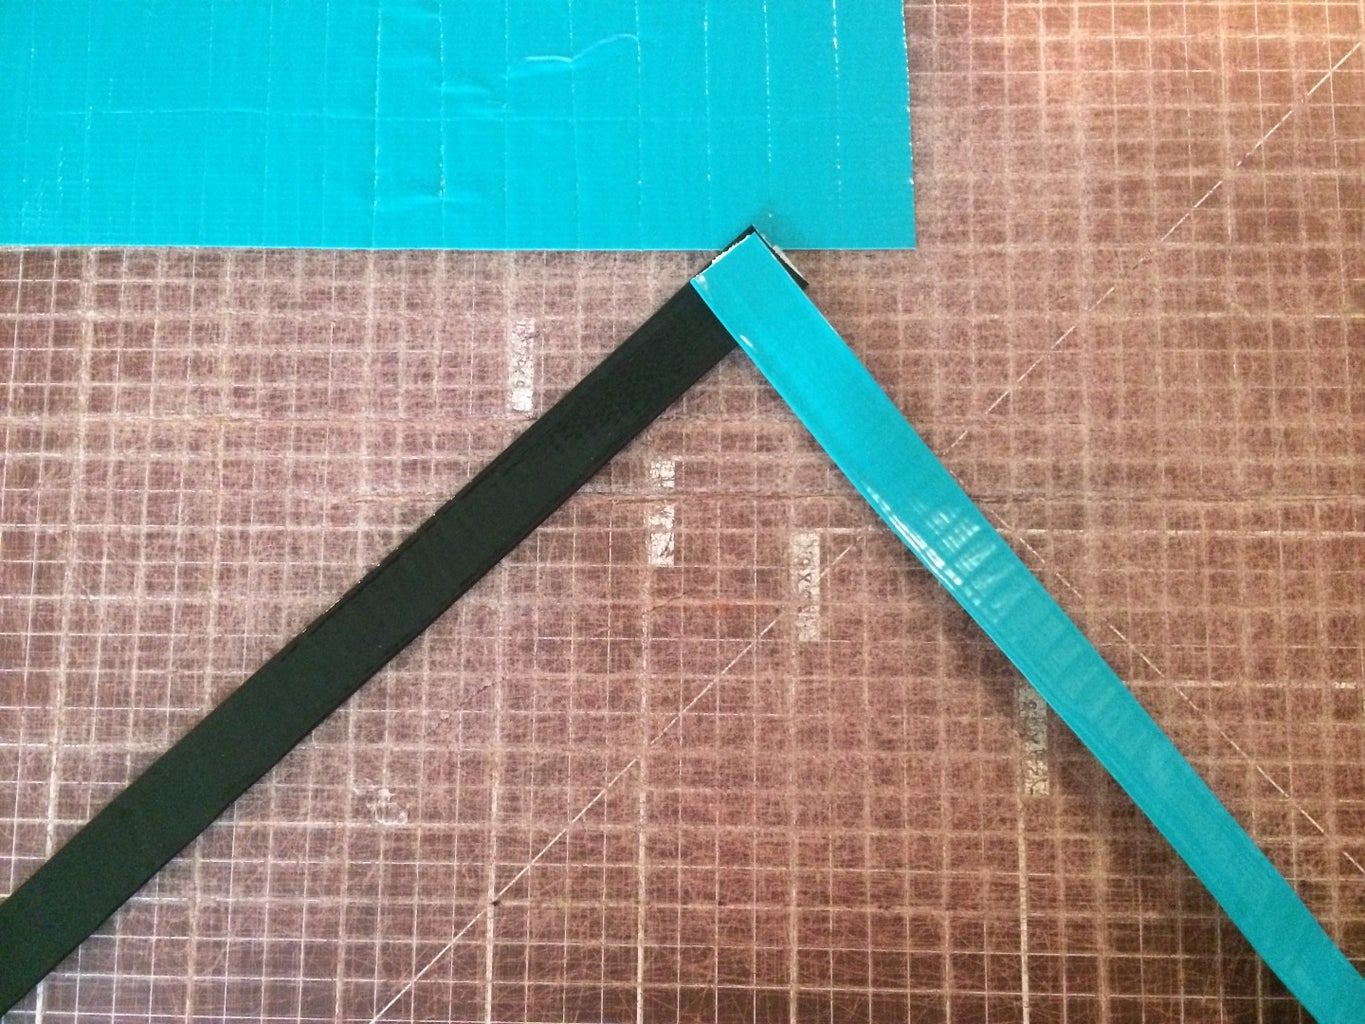 Connecting the Strips of Duct Tape